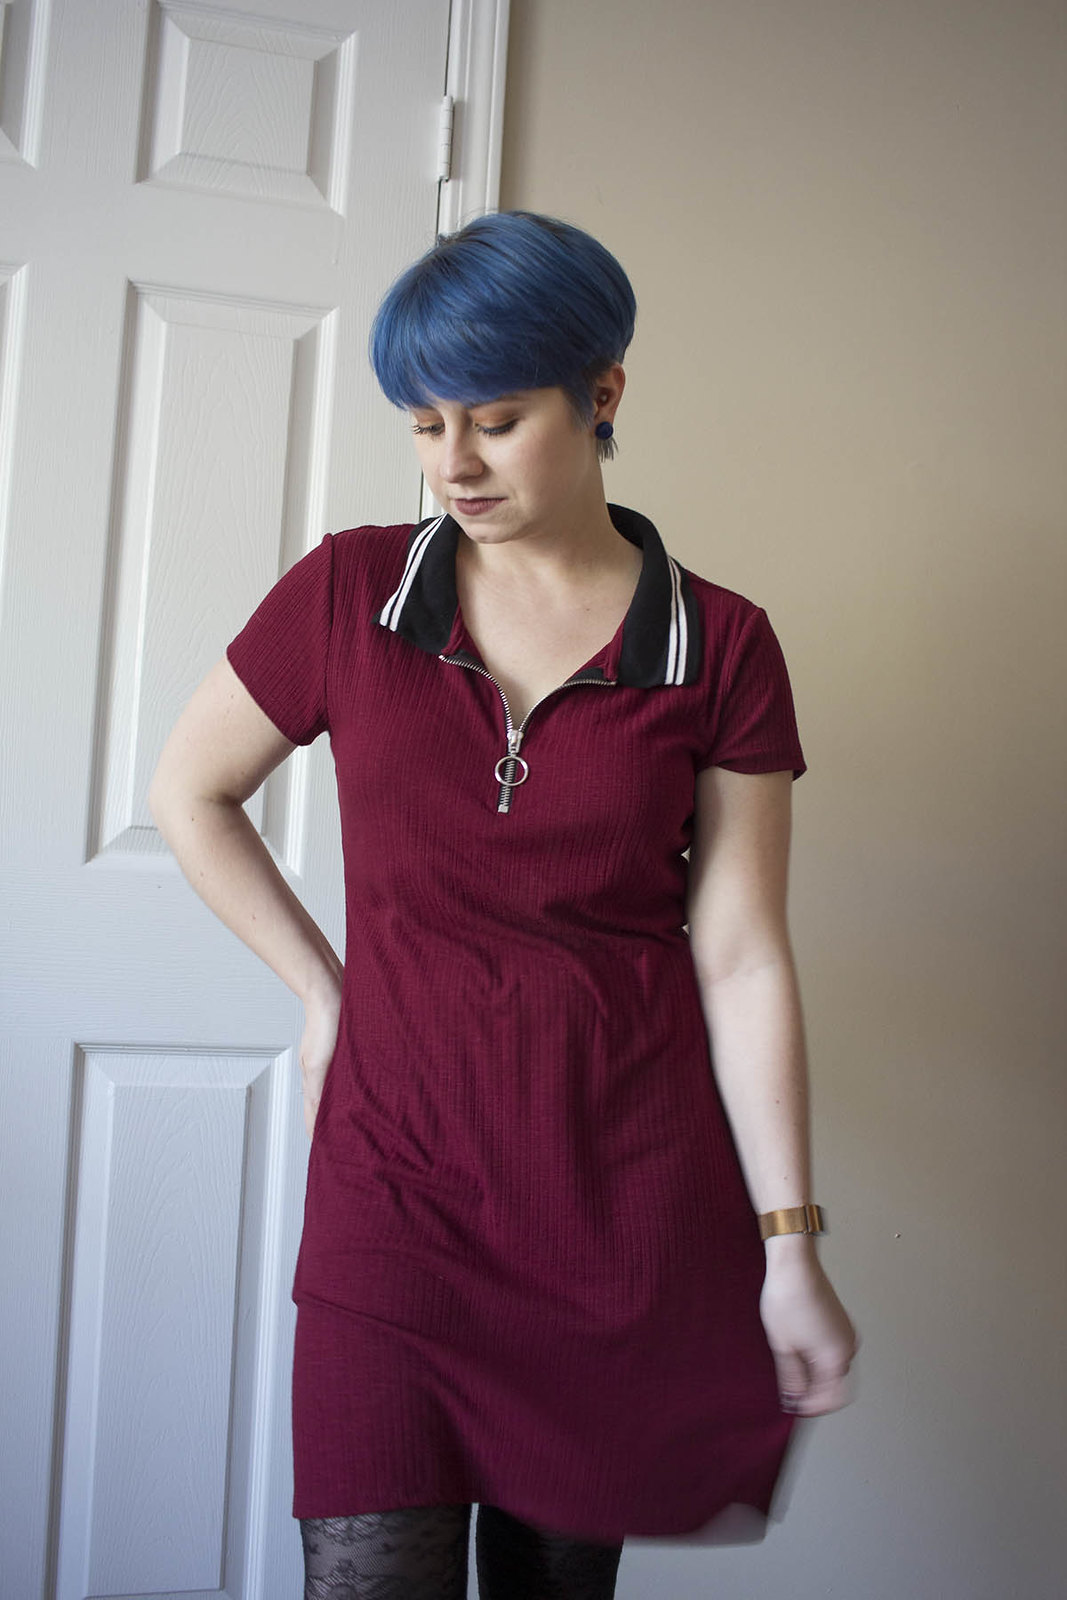 Blue hair girl with maroon polo dress from Target